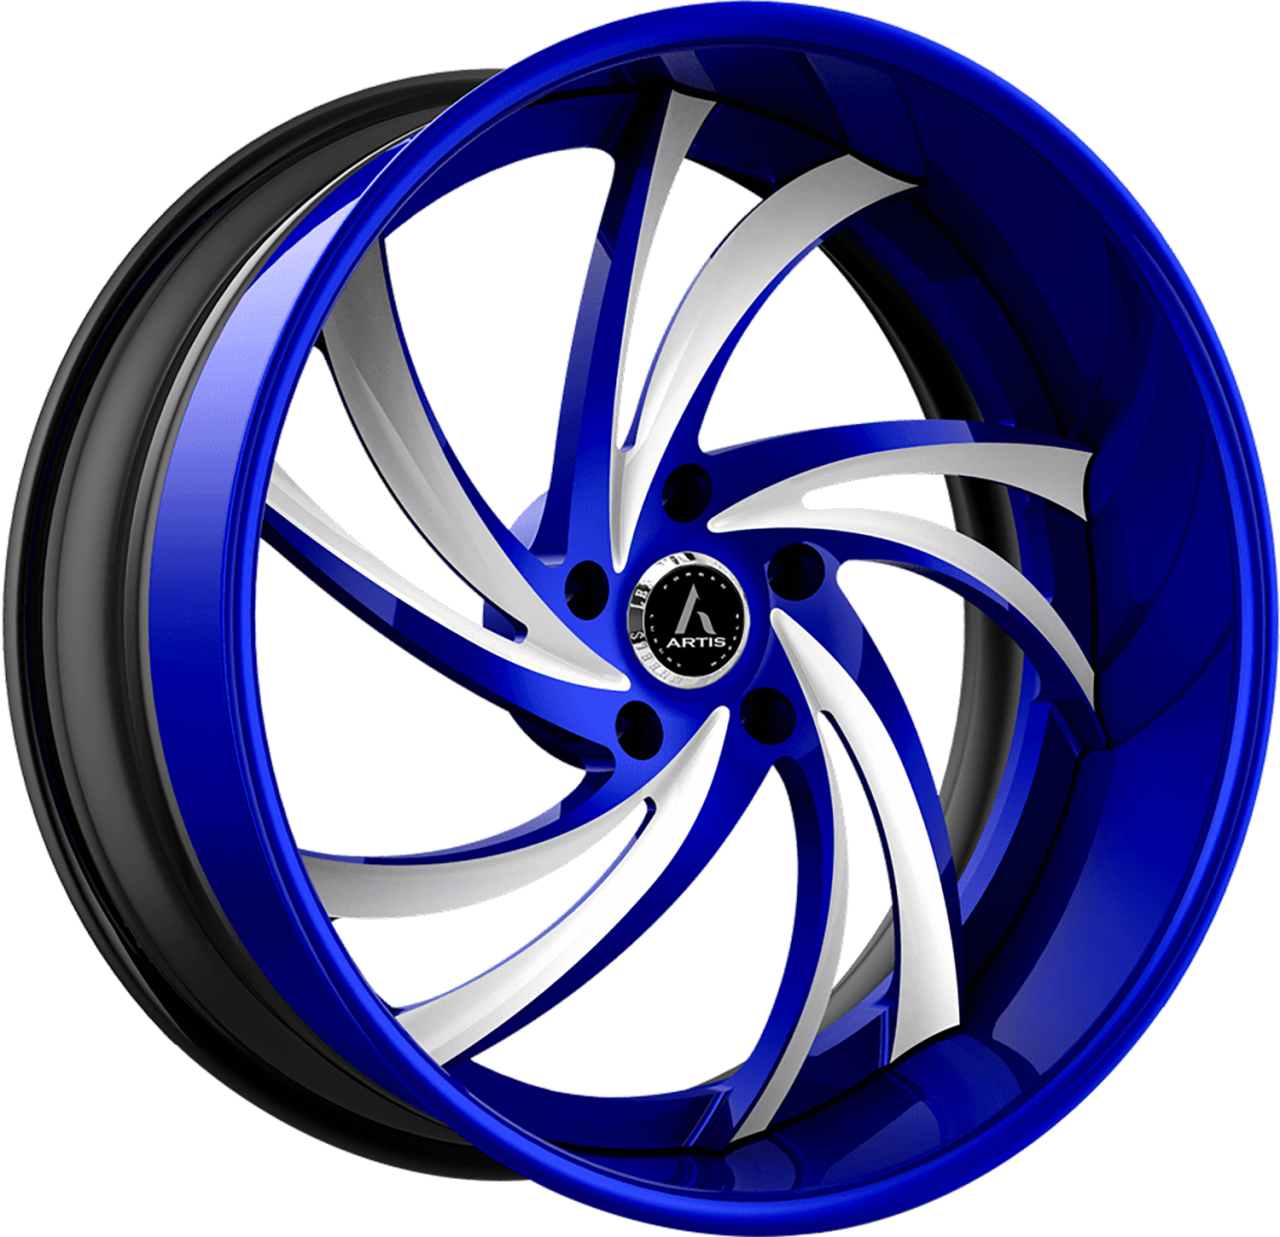 Artis Forged Twister wheel with Custom Blue with White Accents finish